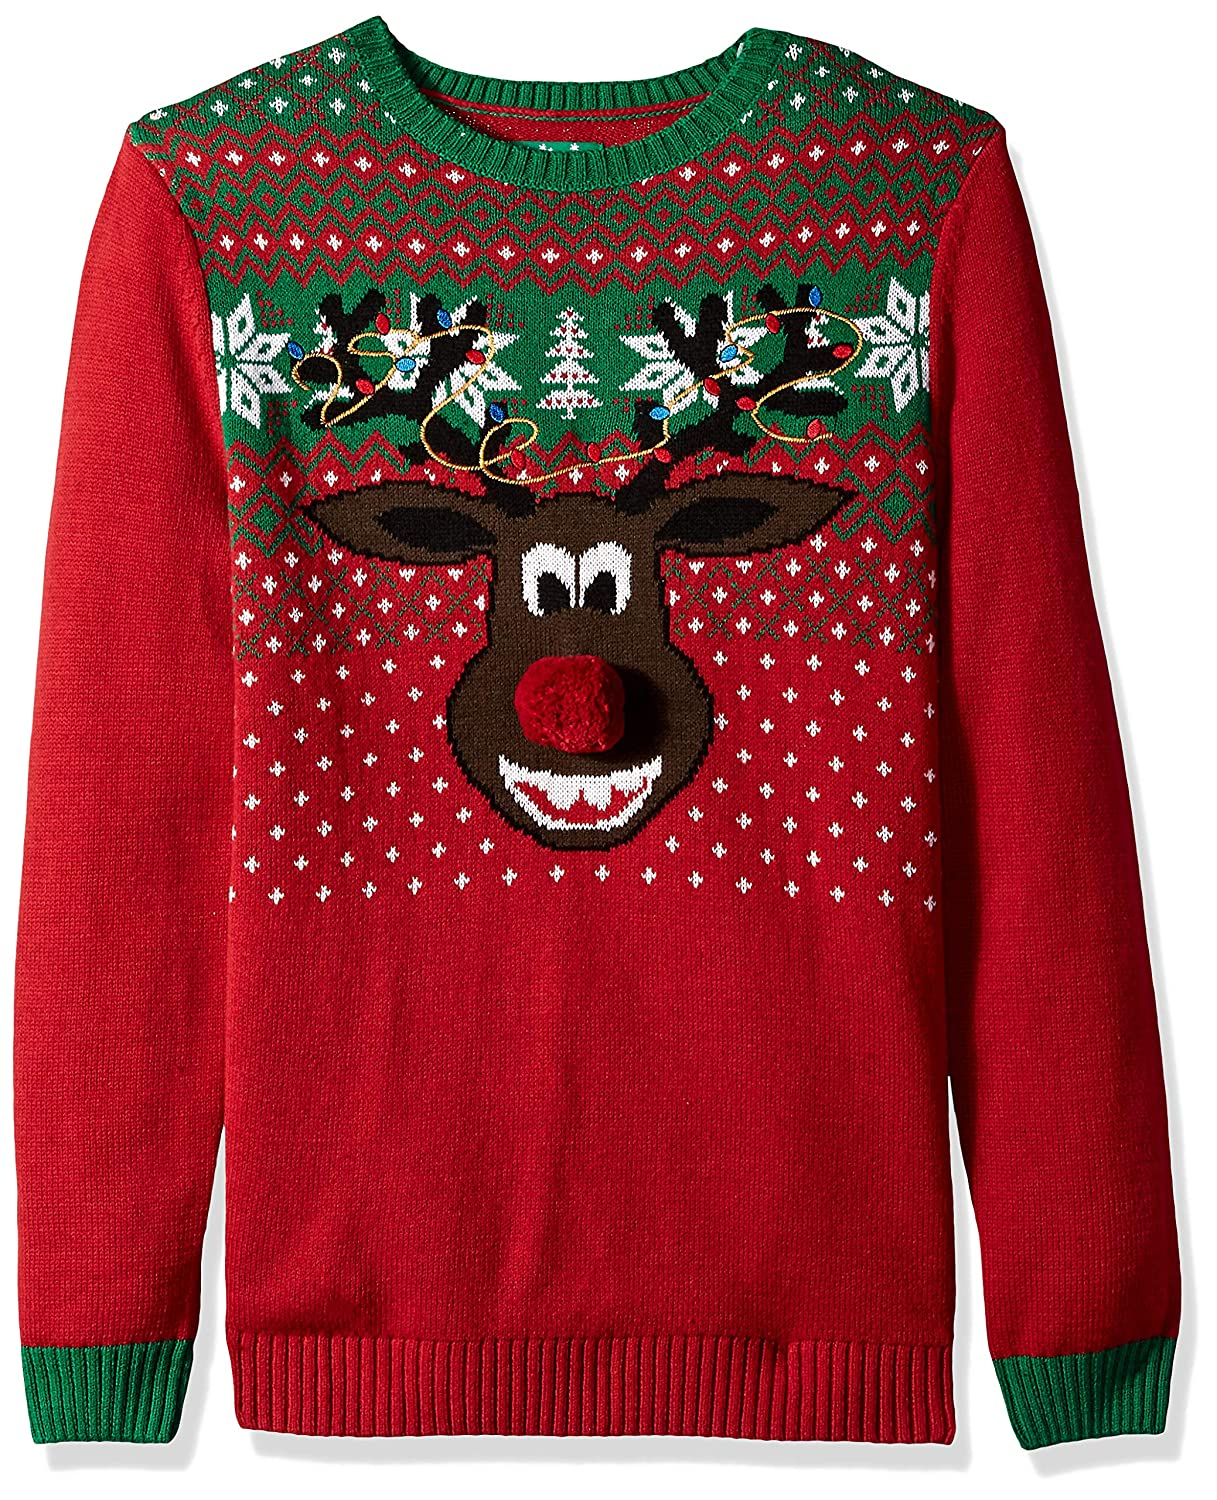 Reindeer Face Xmas Sweater SBP8-1802B 8-20 Ugly Christmas Sweater Company Boys